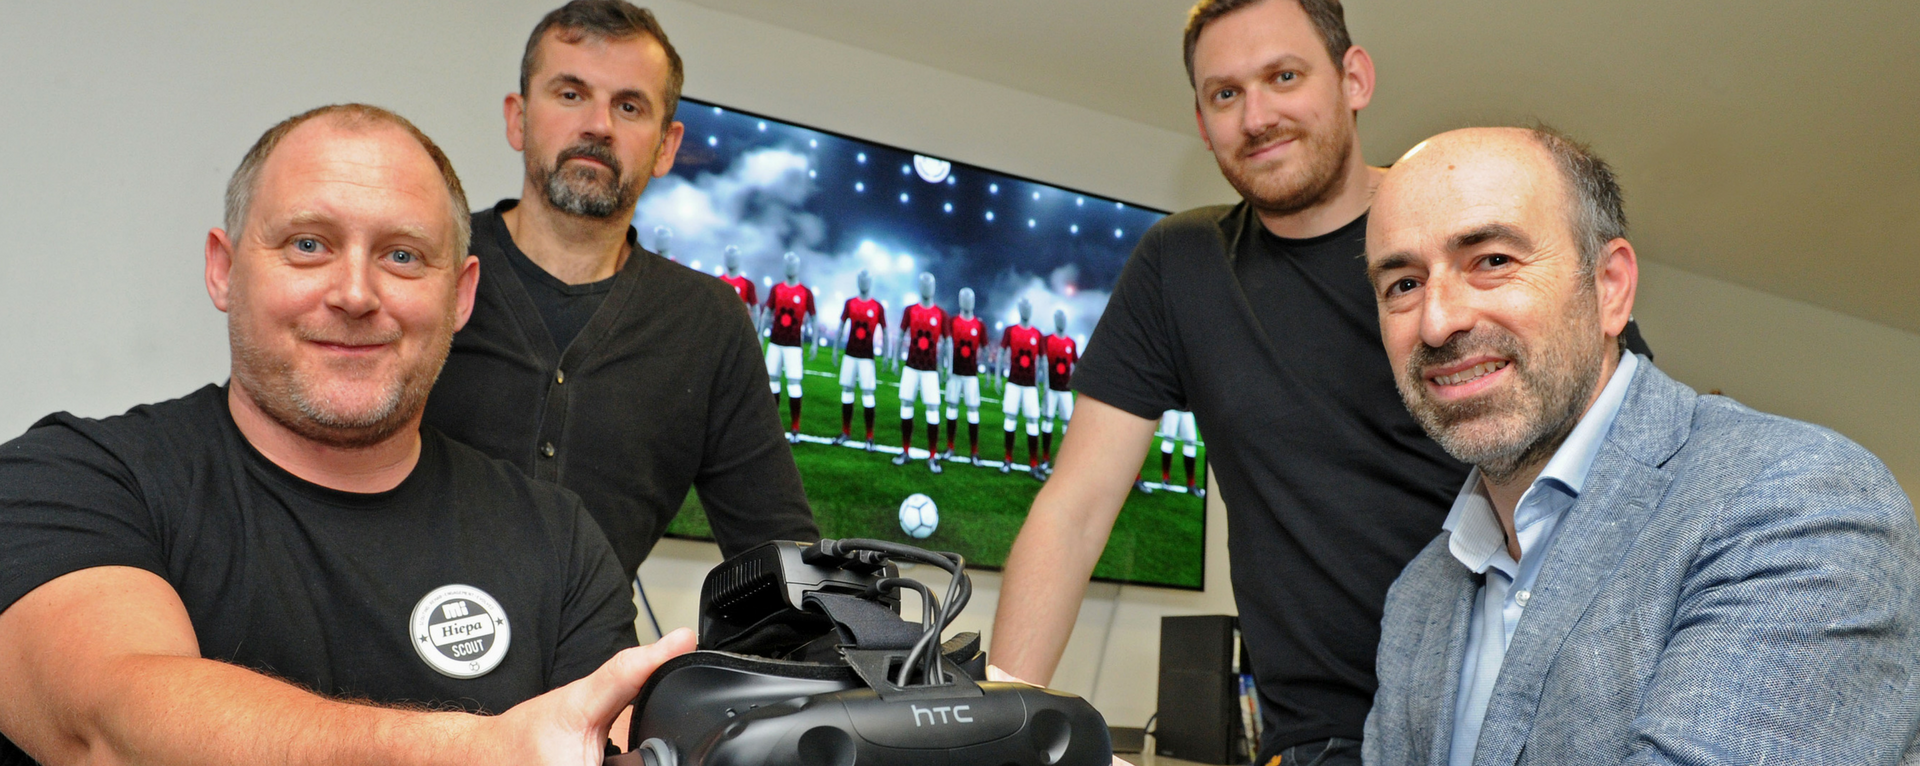 Technology PR agency assists launch of virtual reality tech startup in Manchester